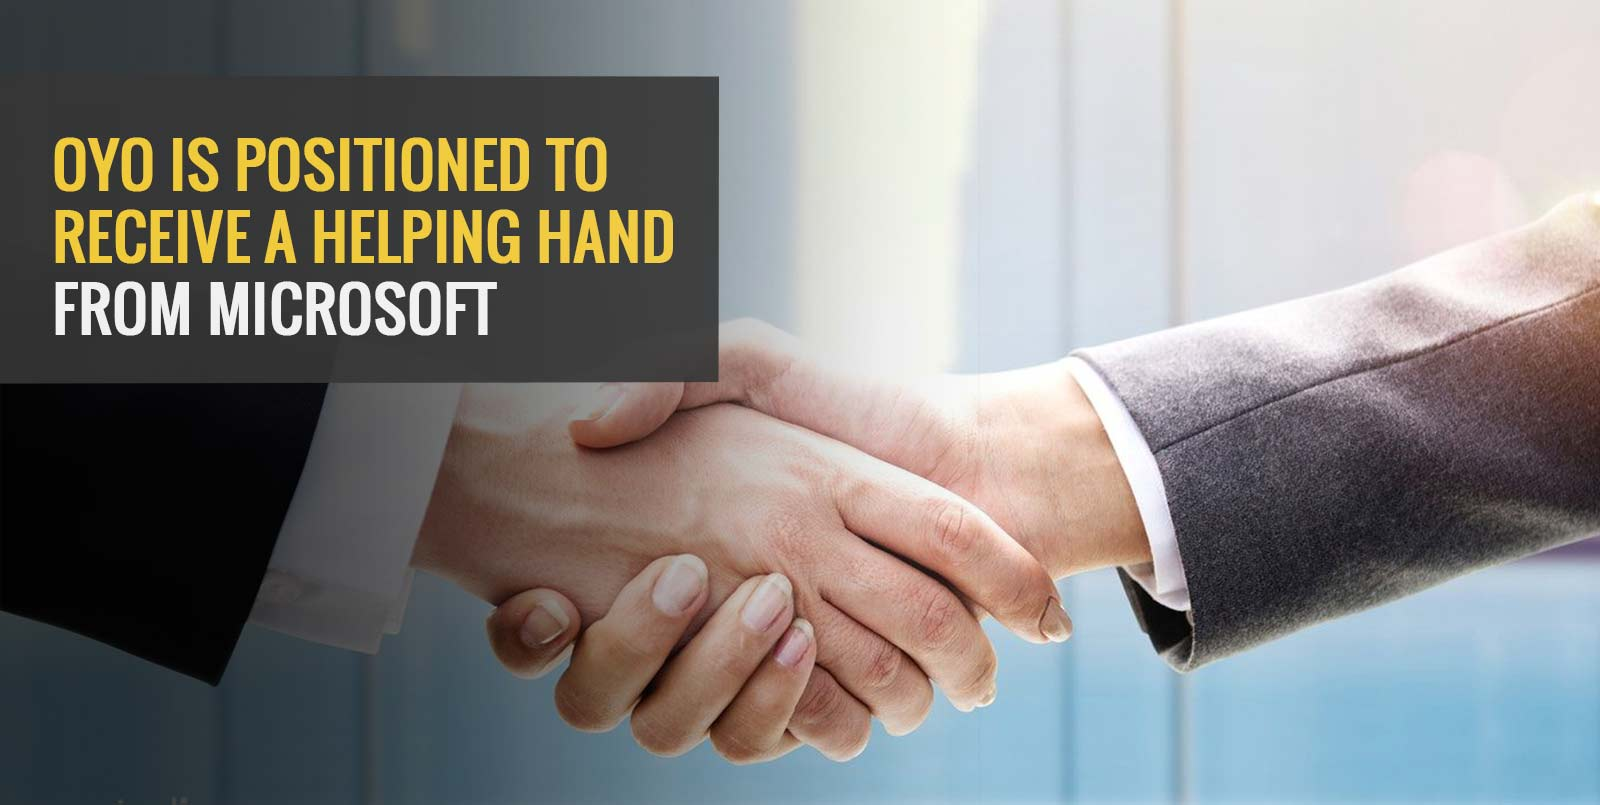 Oyo is Positioned to Receive a Helping Hand from Microsoft